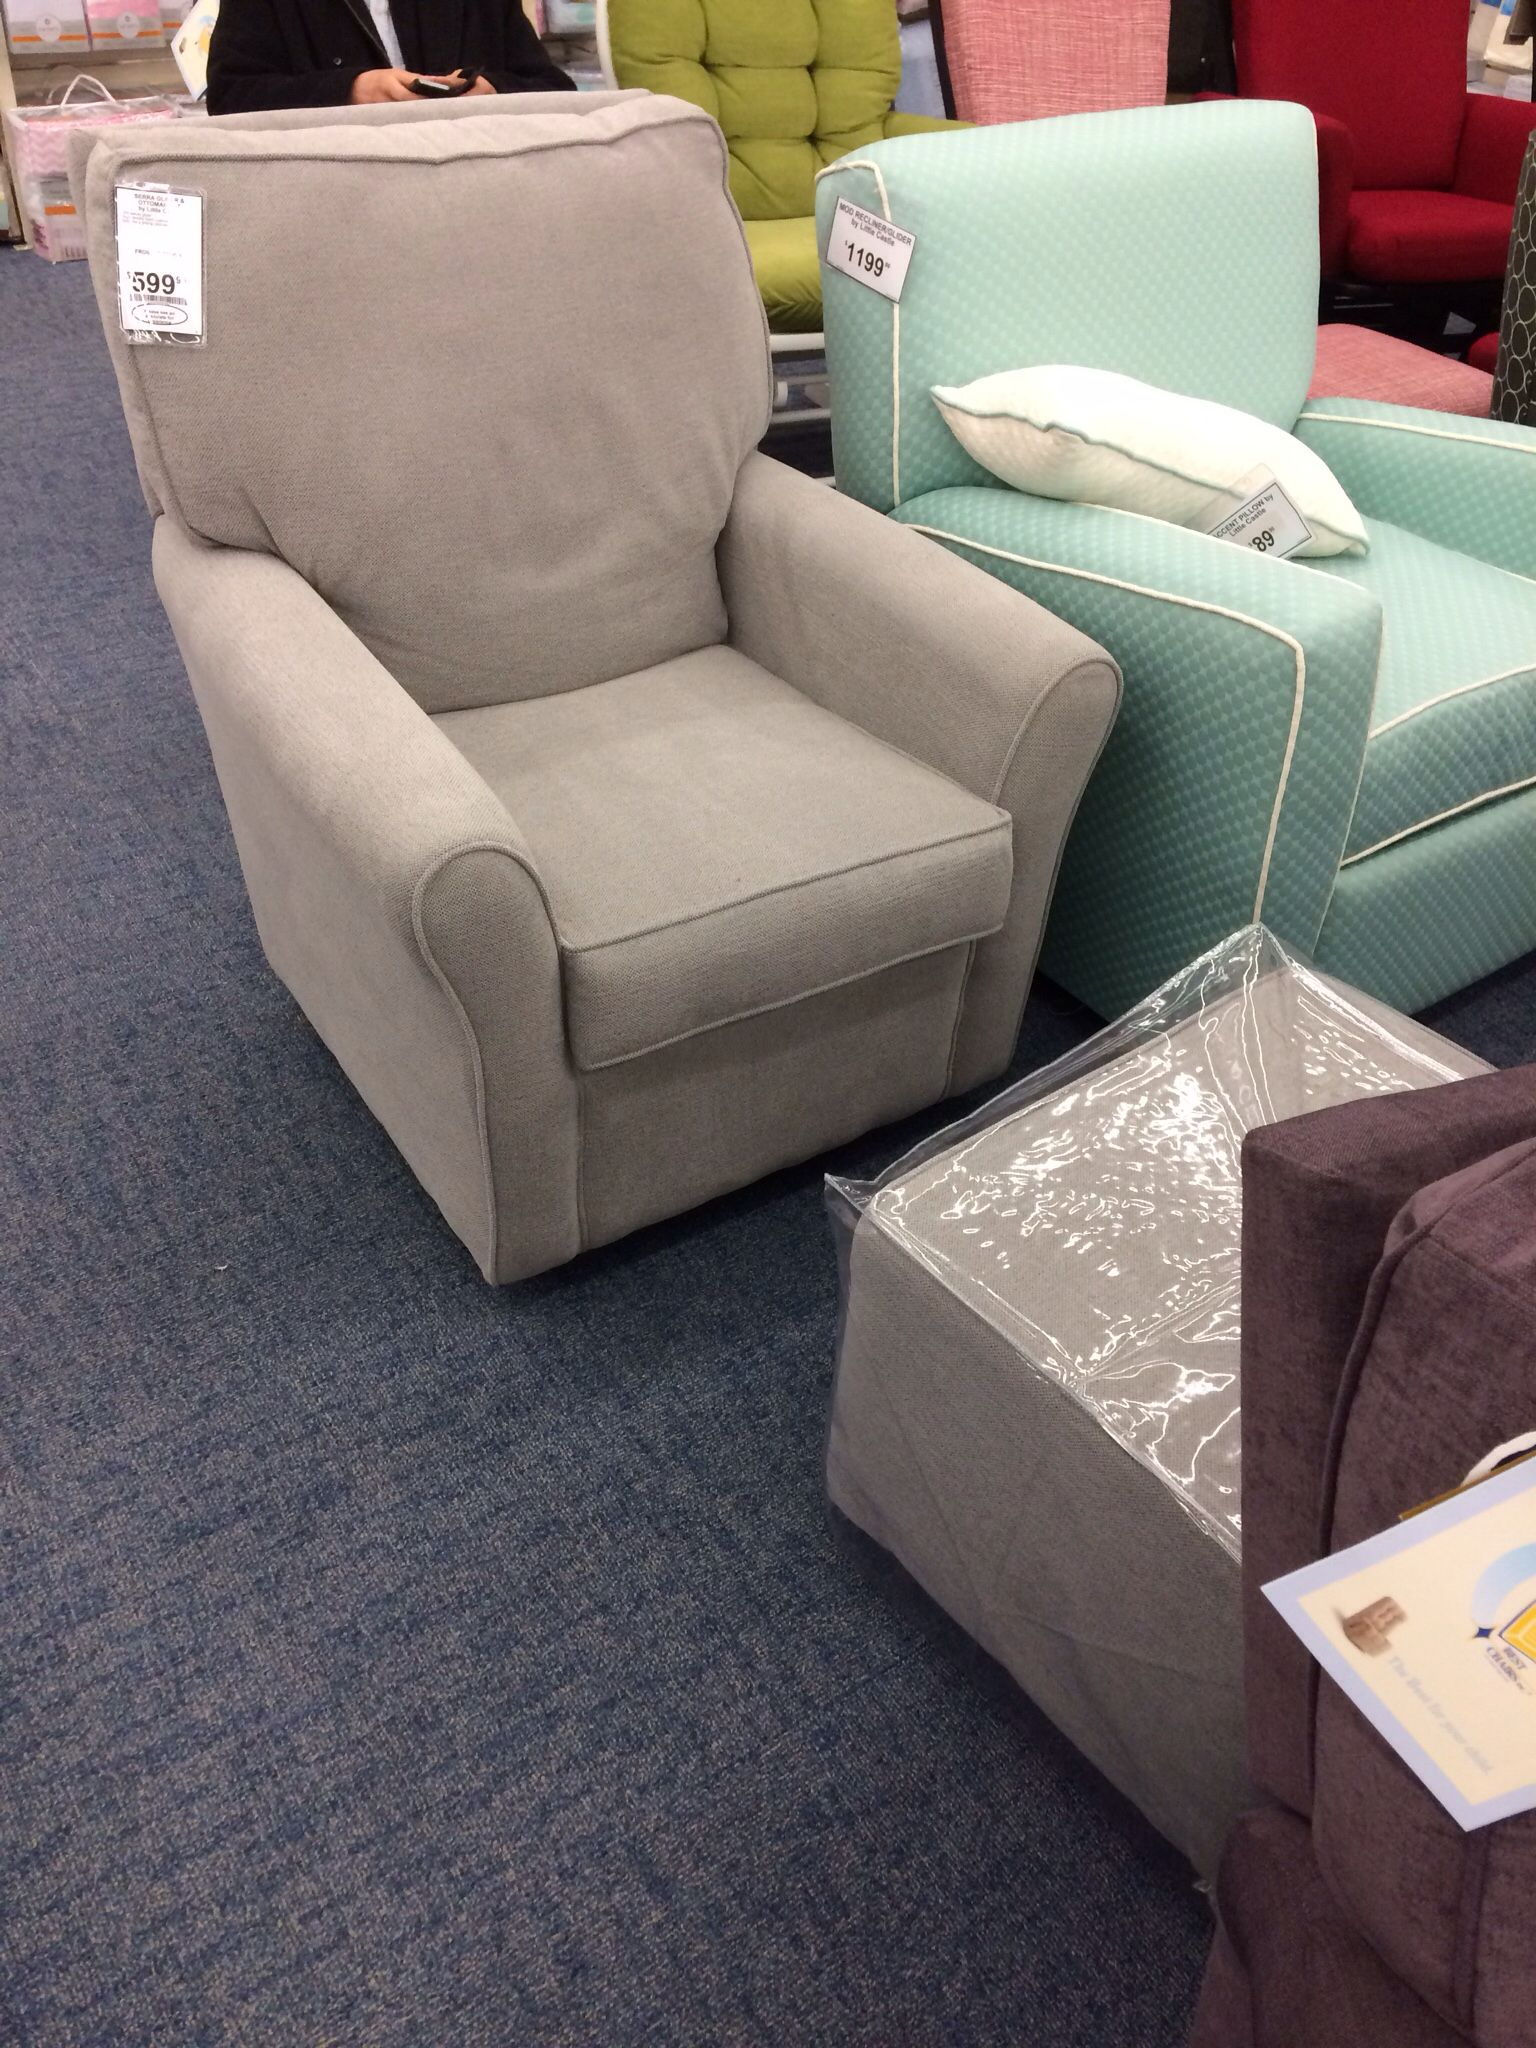 Glider and ottoman set for nursery - Serra Glider At Buy Buy Baby